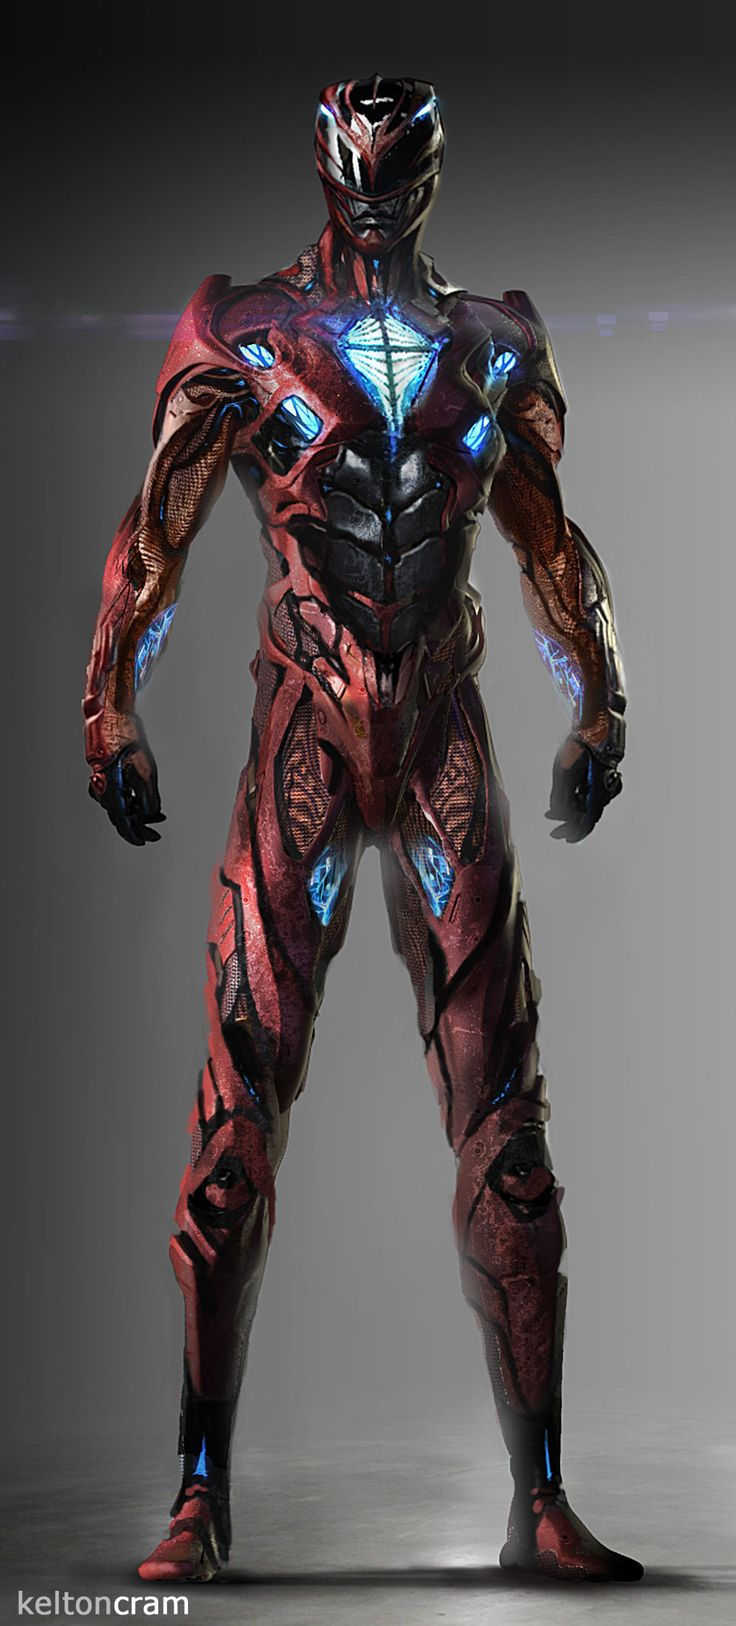 ArtStation - Power Rangers Alien Suit, Kelton Cram